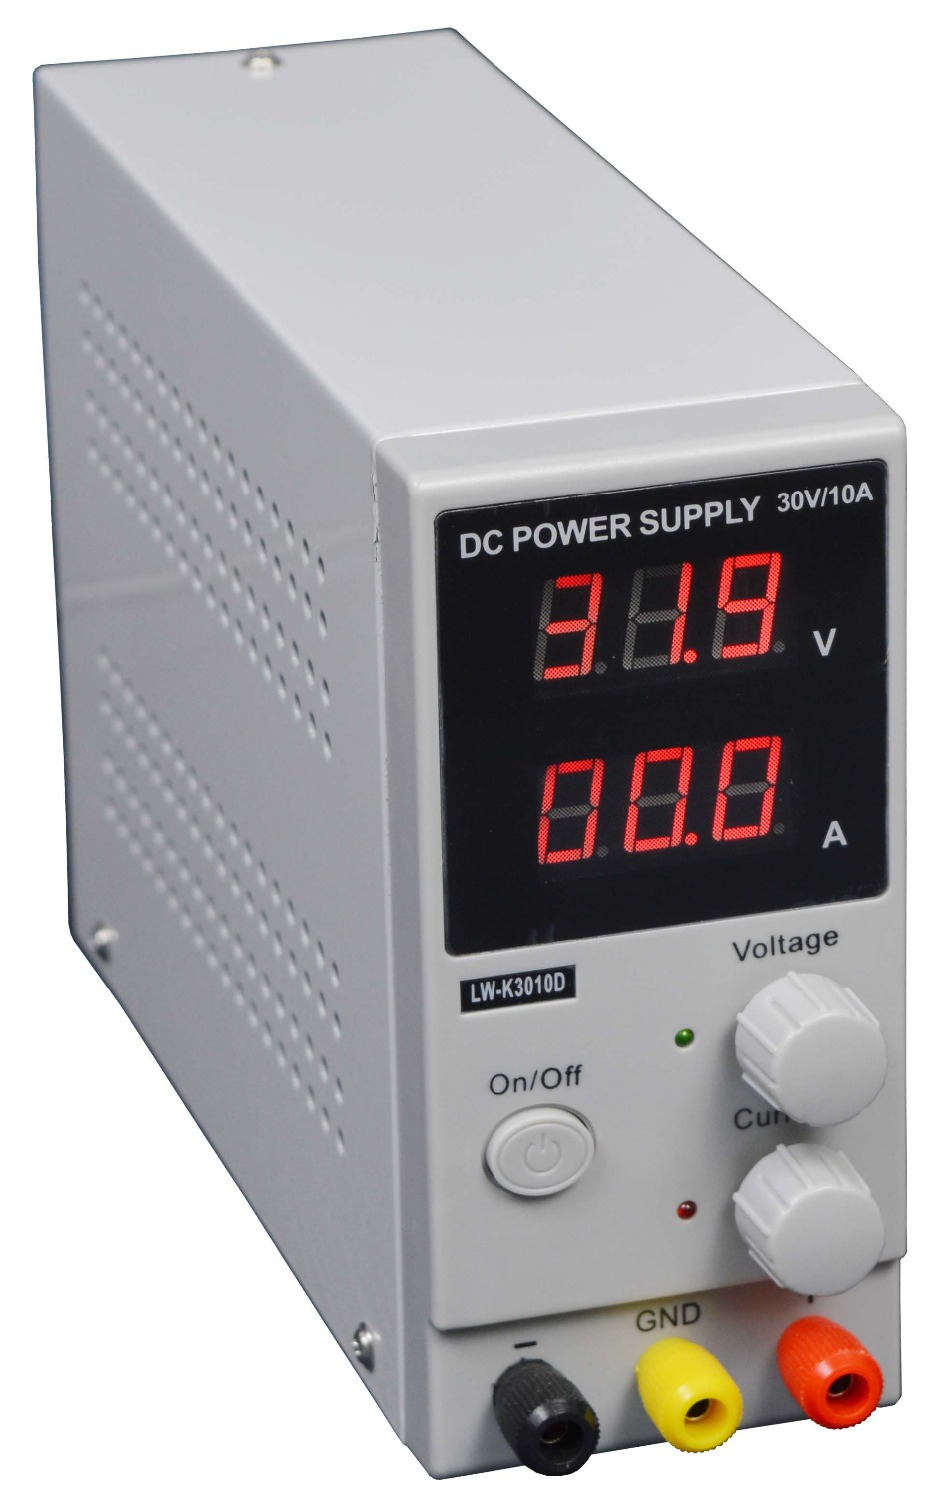 4PCS LW-3010D 110V 220V Mini Adjustable Digital DC power supply,0~30V 0~10A ,Switching Power supply, certification,US/EU/AU Plug original lw mini adjustable digital dc power supply 0 30v 0 10a 110v 220v switching power supply 0 01v 0 01a 34 pcs dc jack